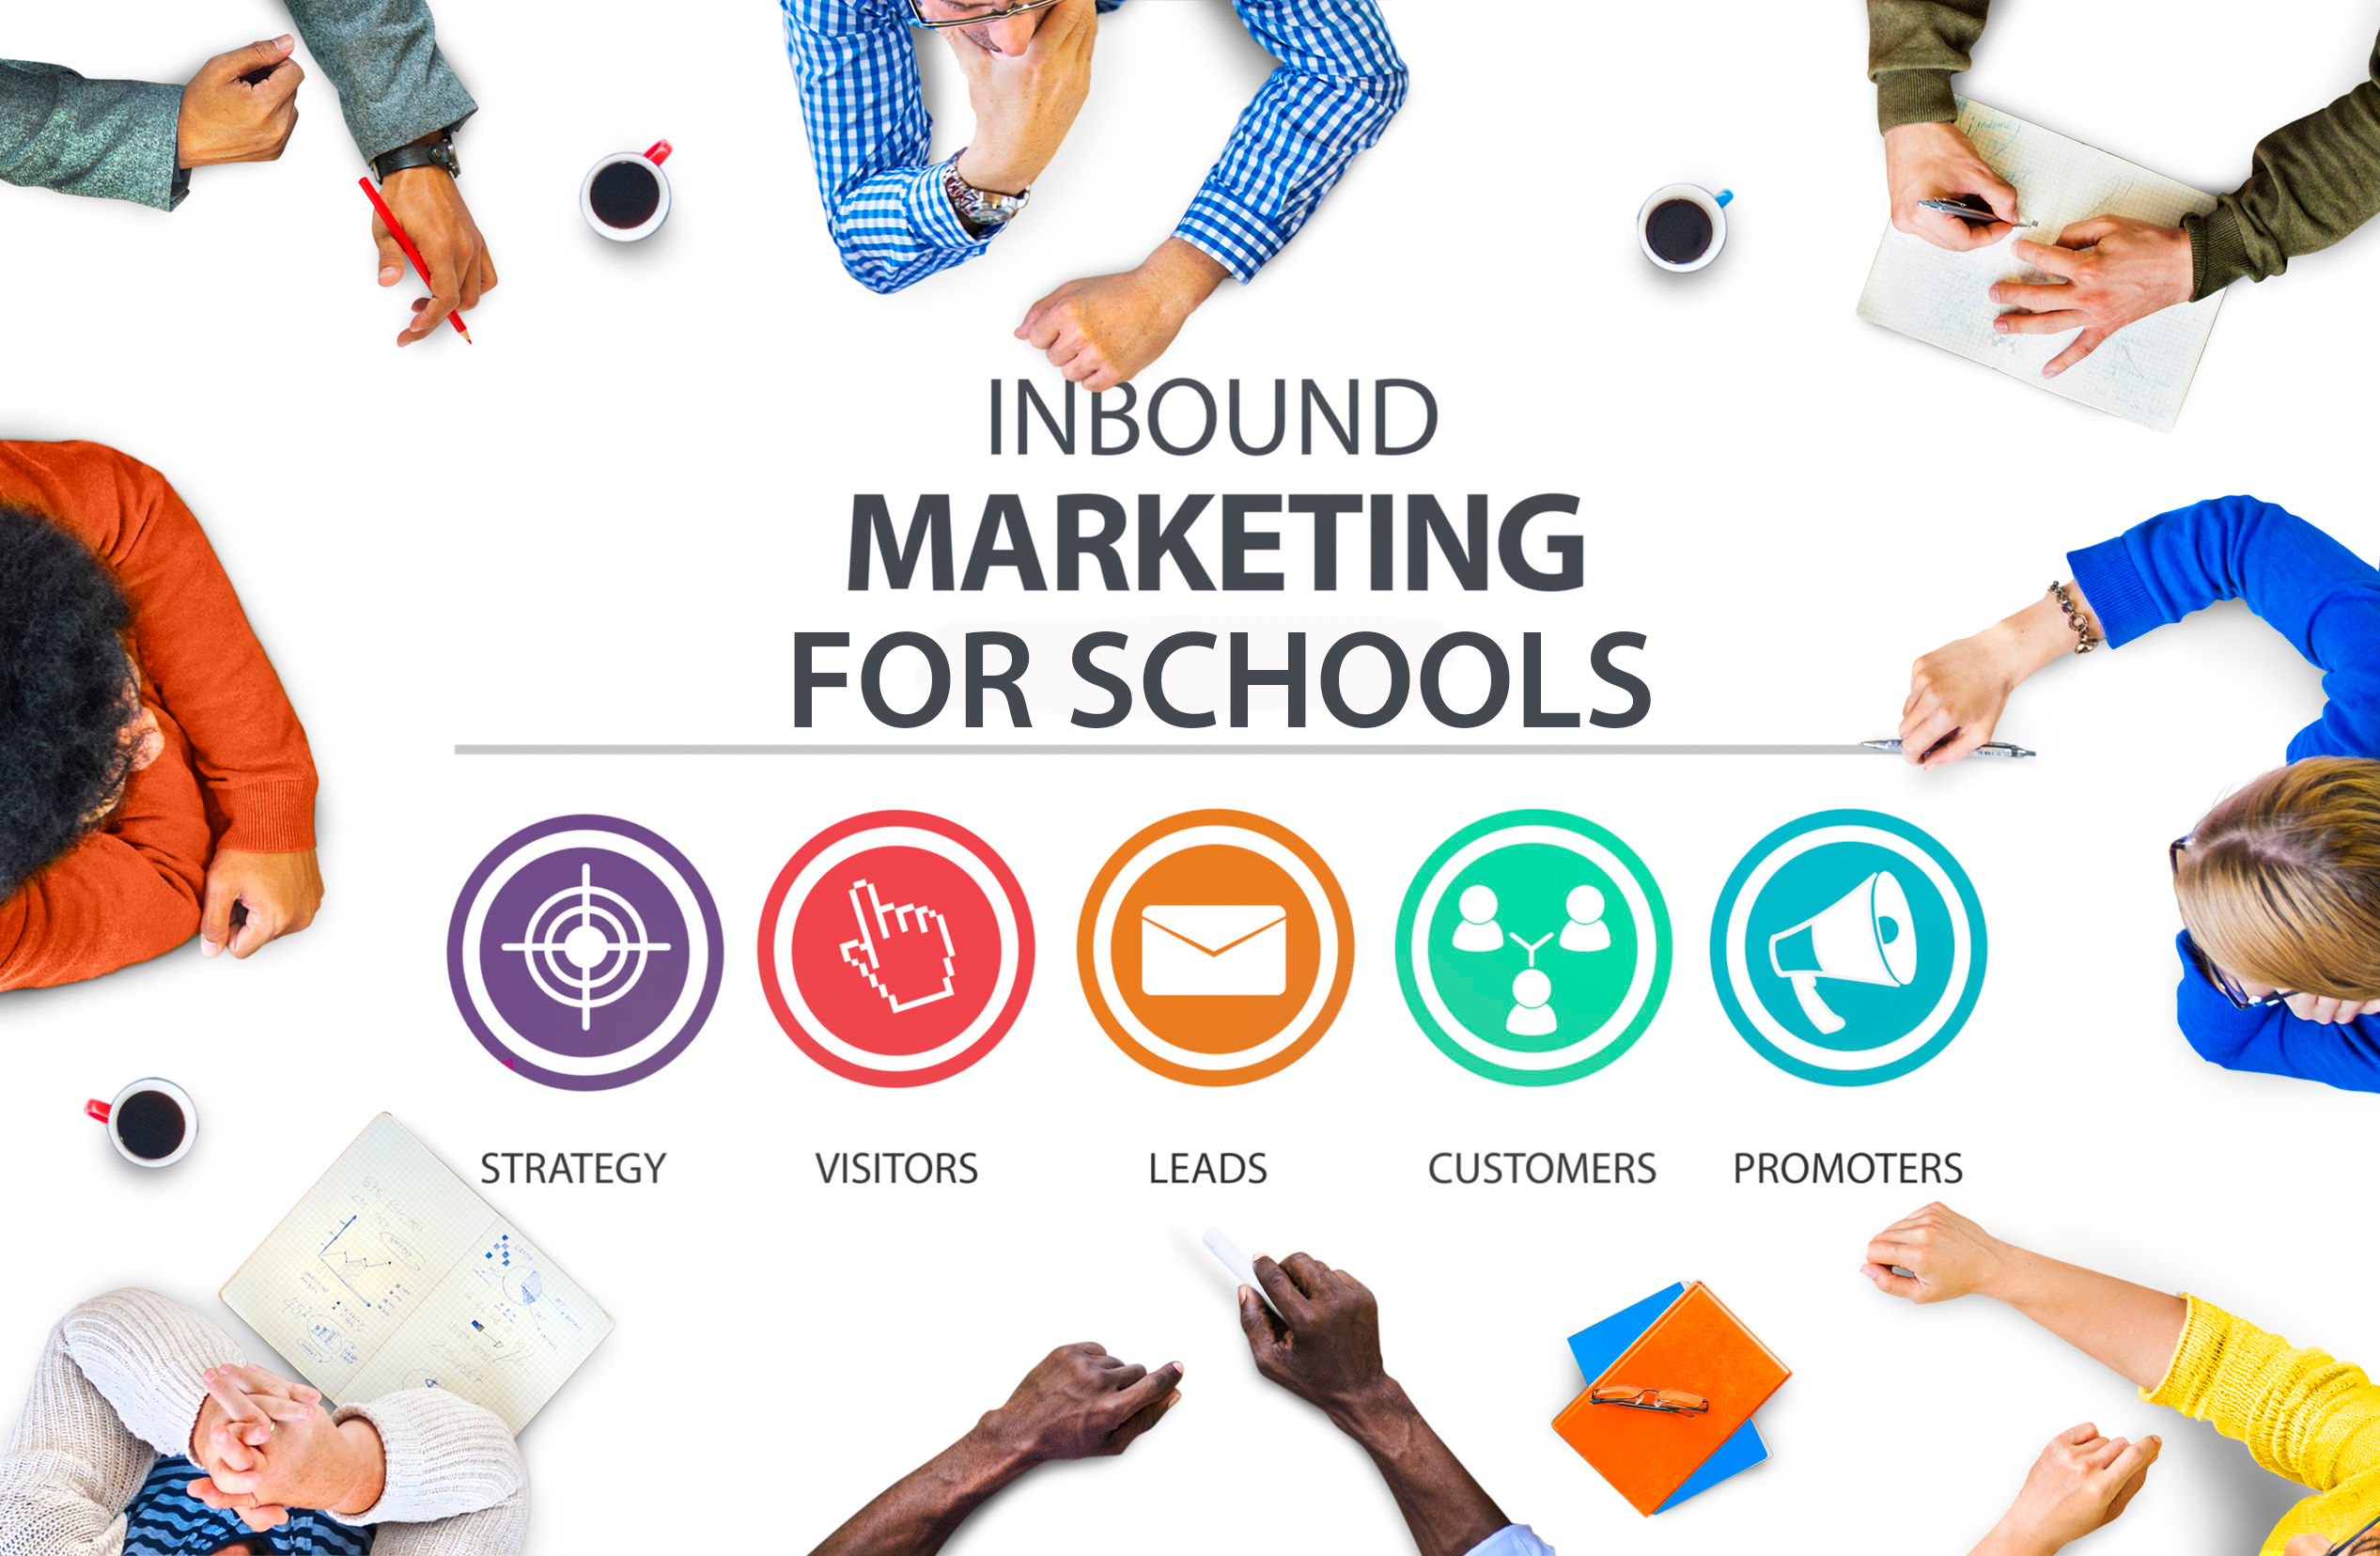 Want to Increase Student Enrollment? 5 Inbound Marketing Tips for Colleges